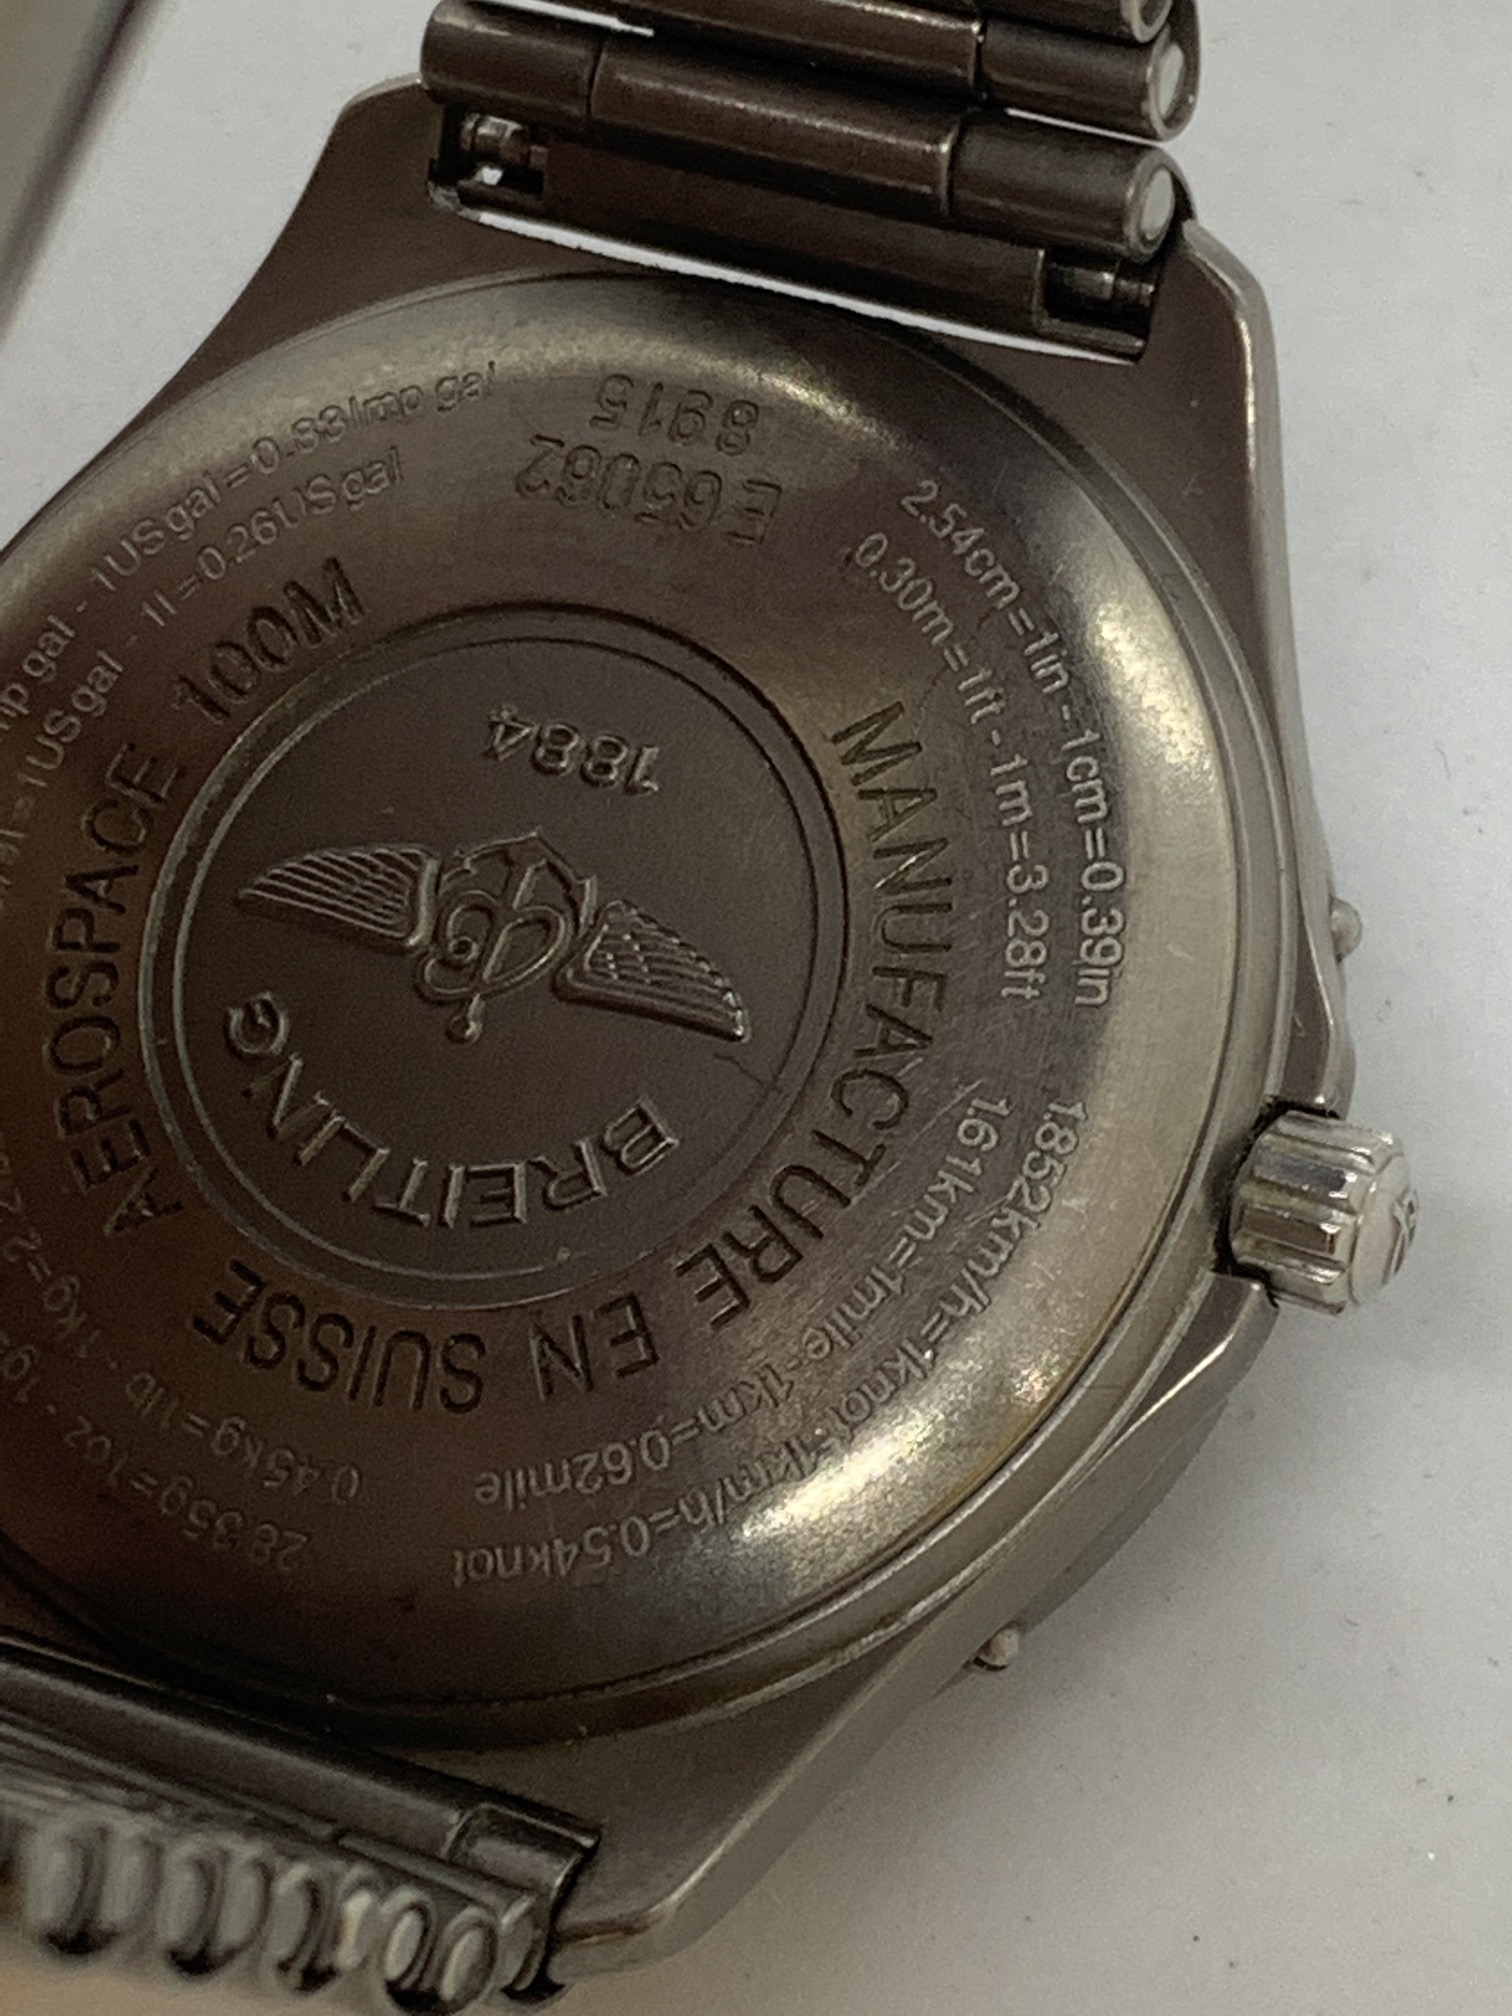 BREITLING TITANIUM WATCH A/F - Image 11 of 15